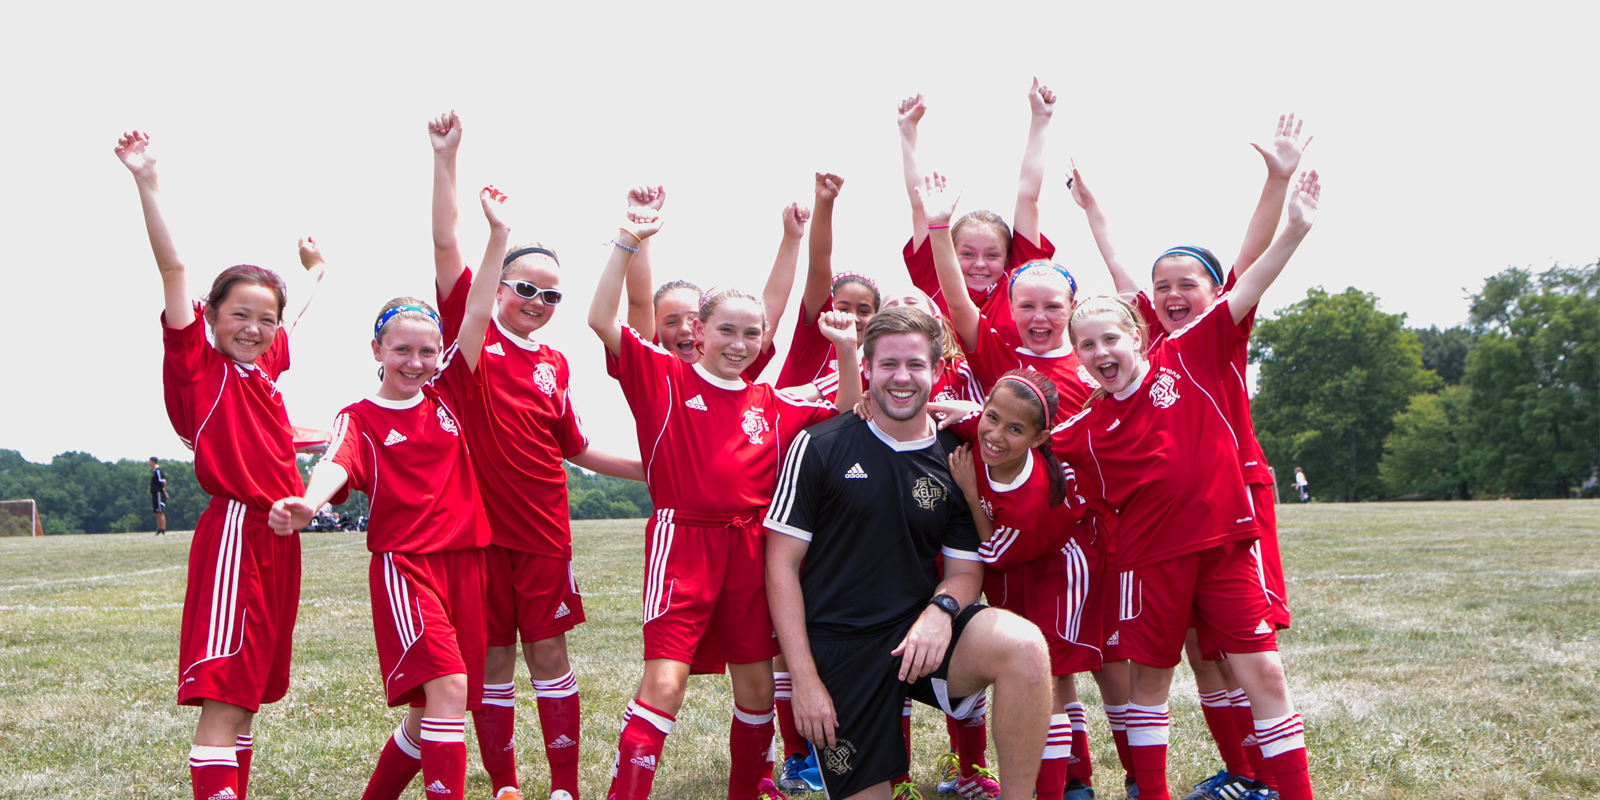 c4a961263 Three Incredible Benefits of Youth Soccer Programs | UK Elite